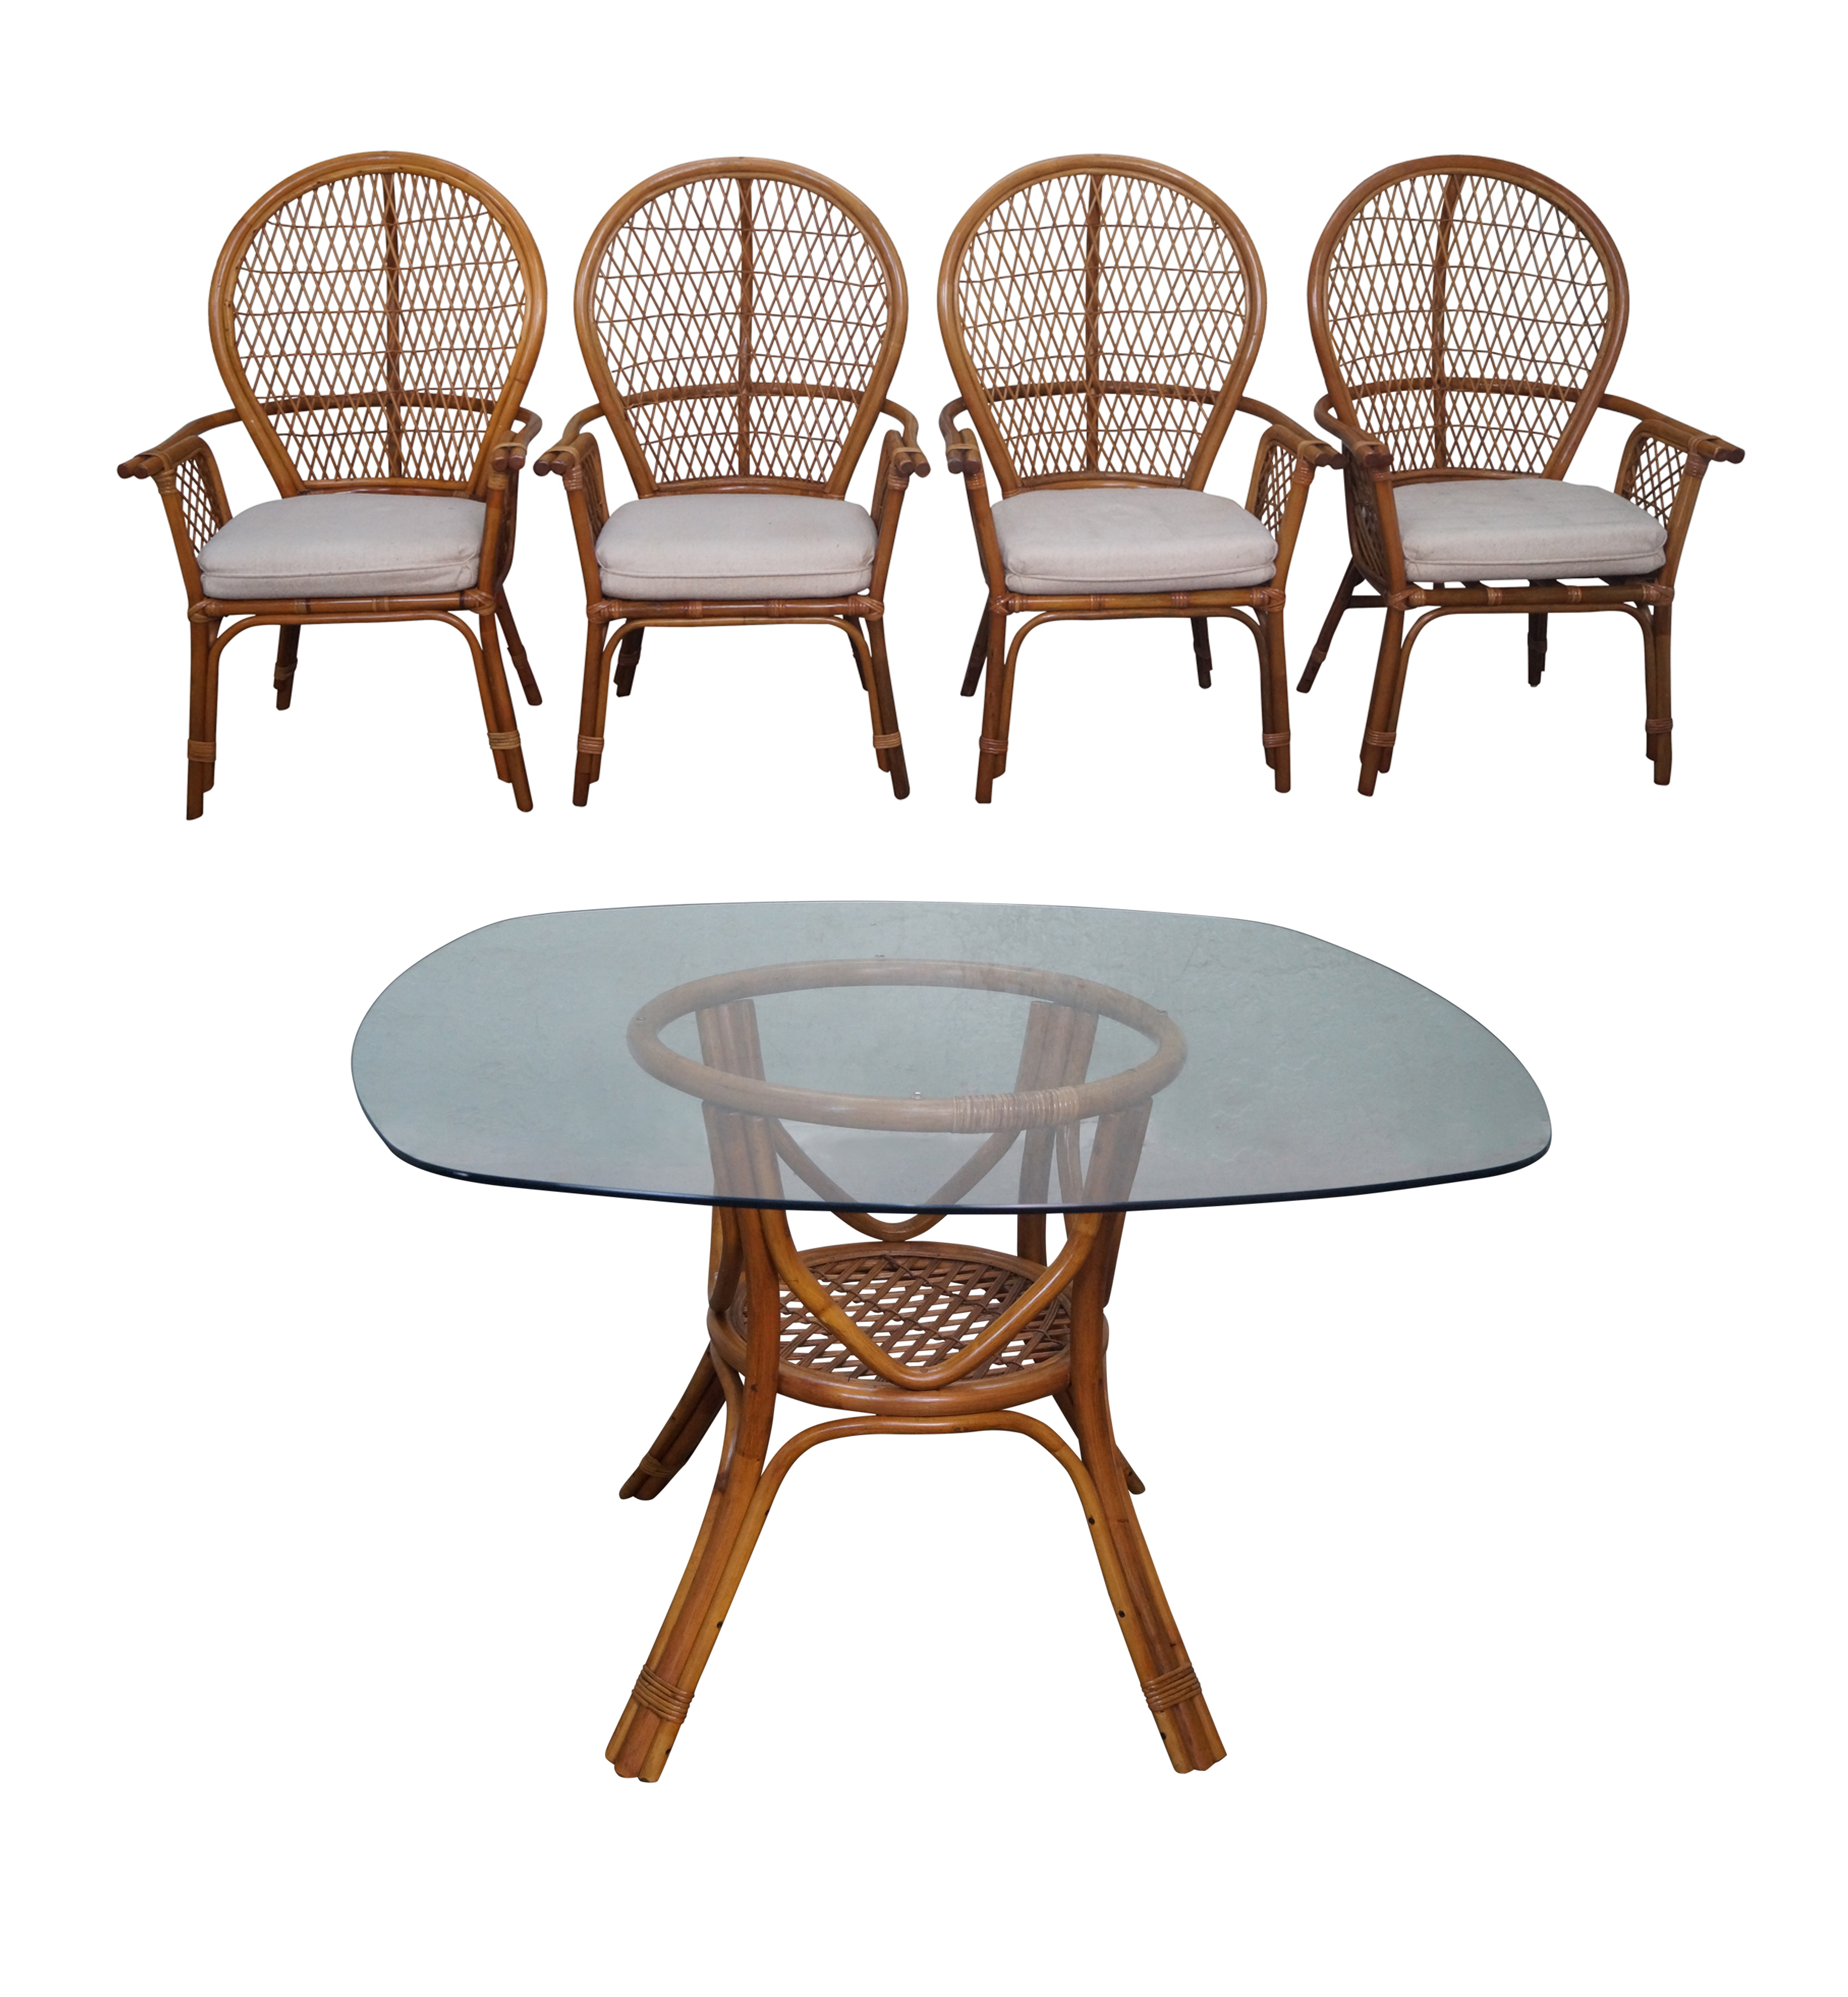 Vintage Rattan Gl Top Dining Table Chair Set Age Country Of Origin Rox 35 Years America Details Description High Quality Genuine Woven